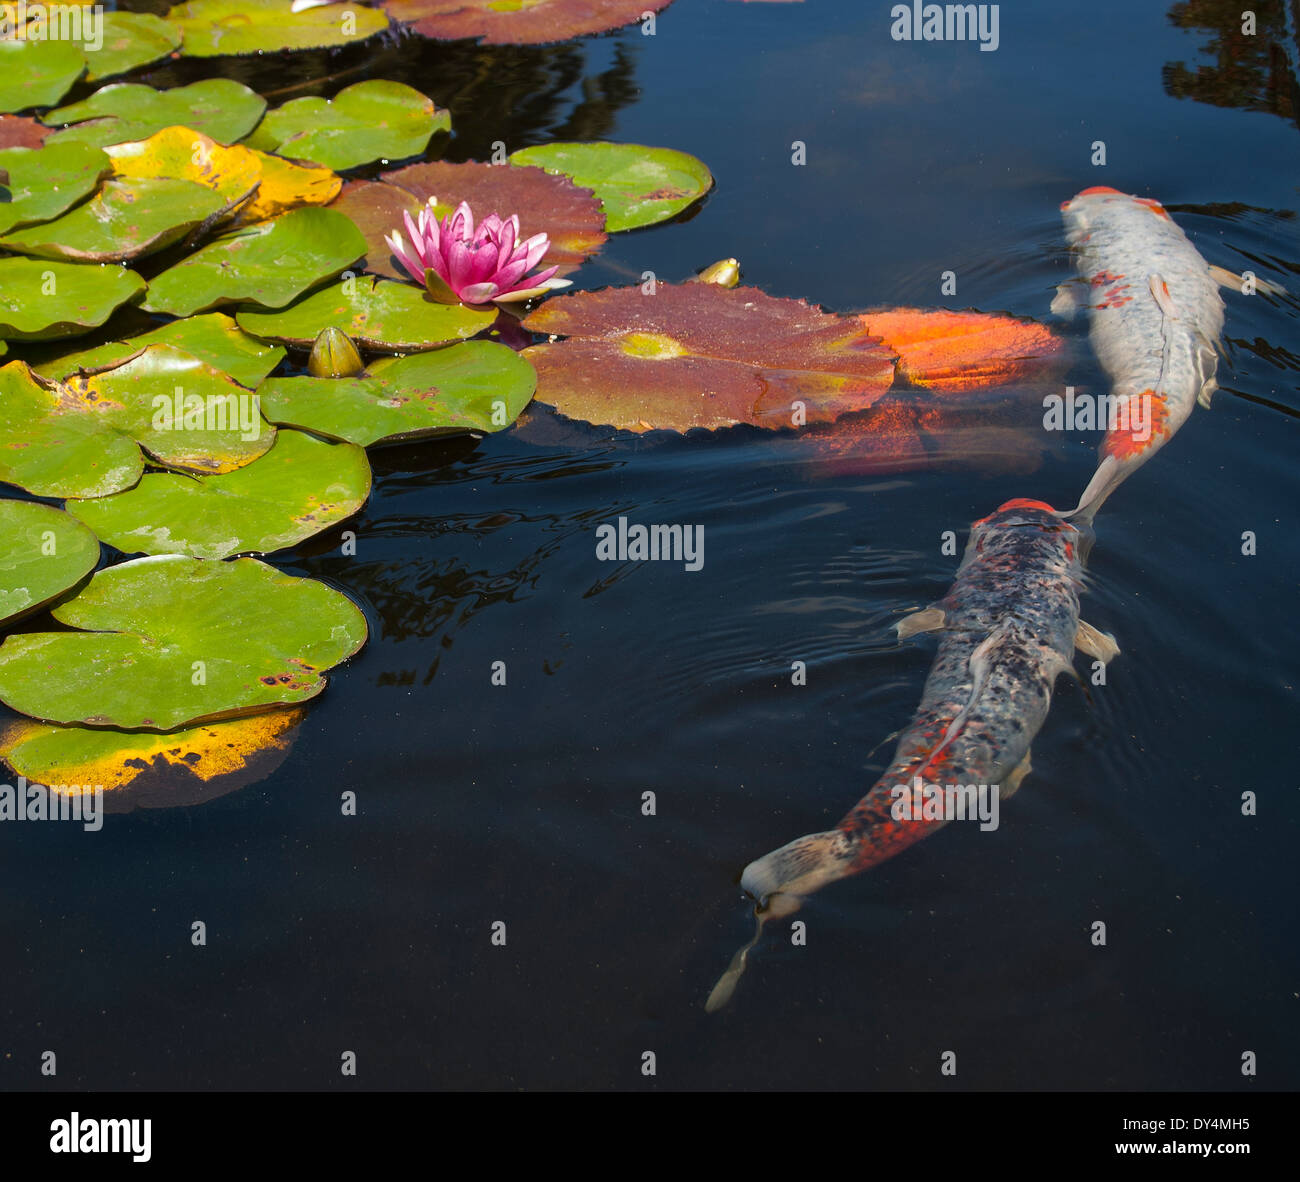 A lily pond with a lotus flower blooming while two koi for Koi fish pond lotus